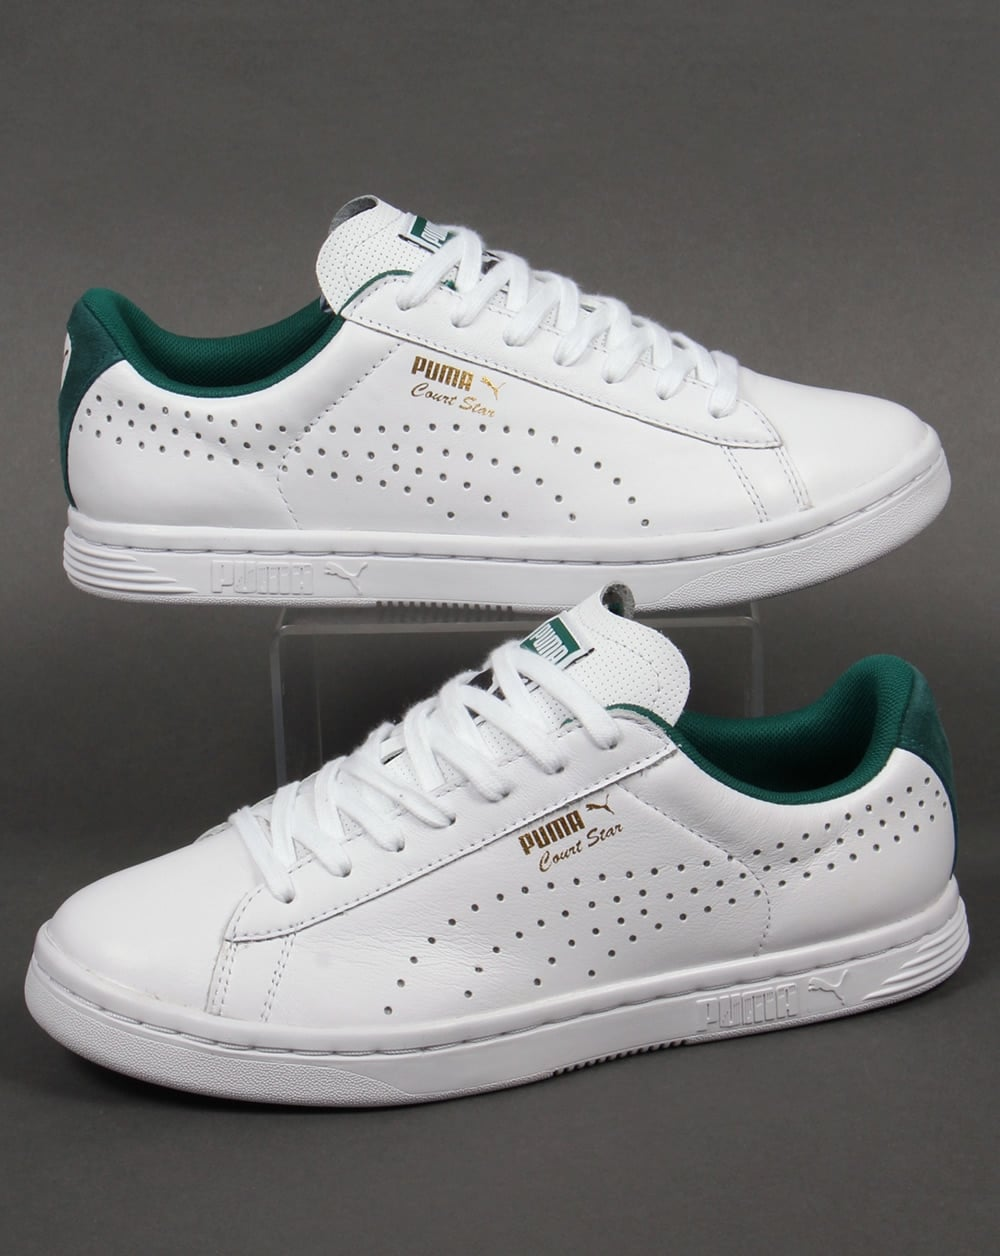 cfcd76d7d3f6 Puma Court Star Crafted Trainers White Green - Trainers from 80s ...